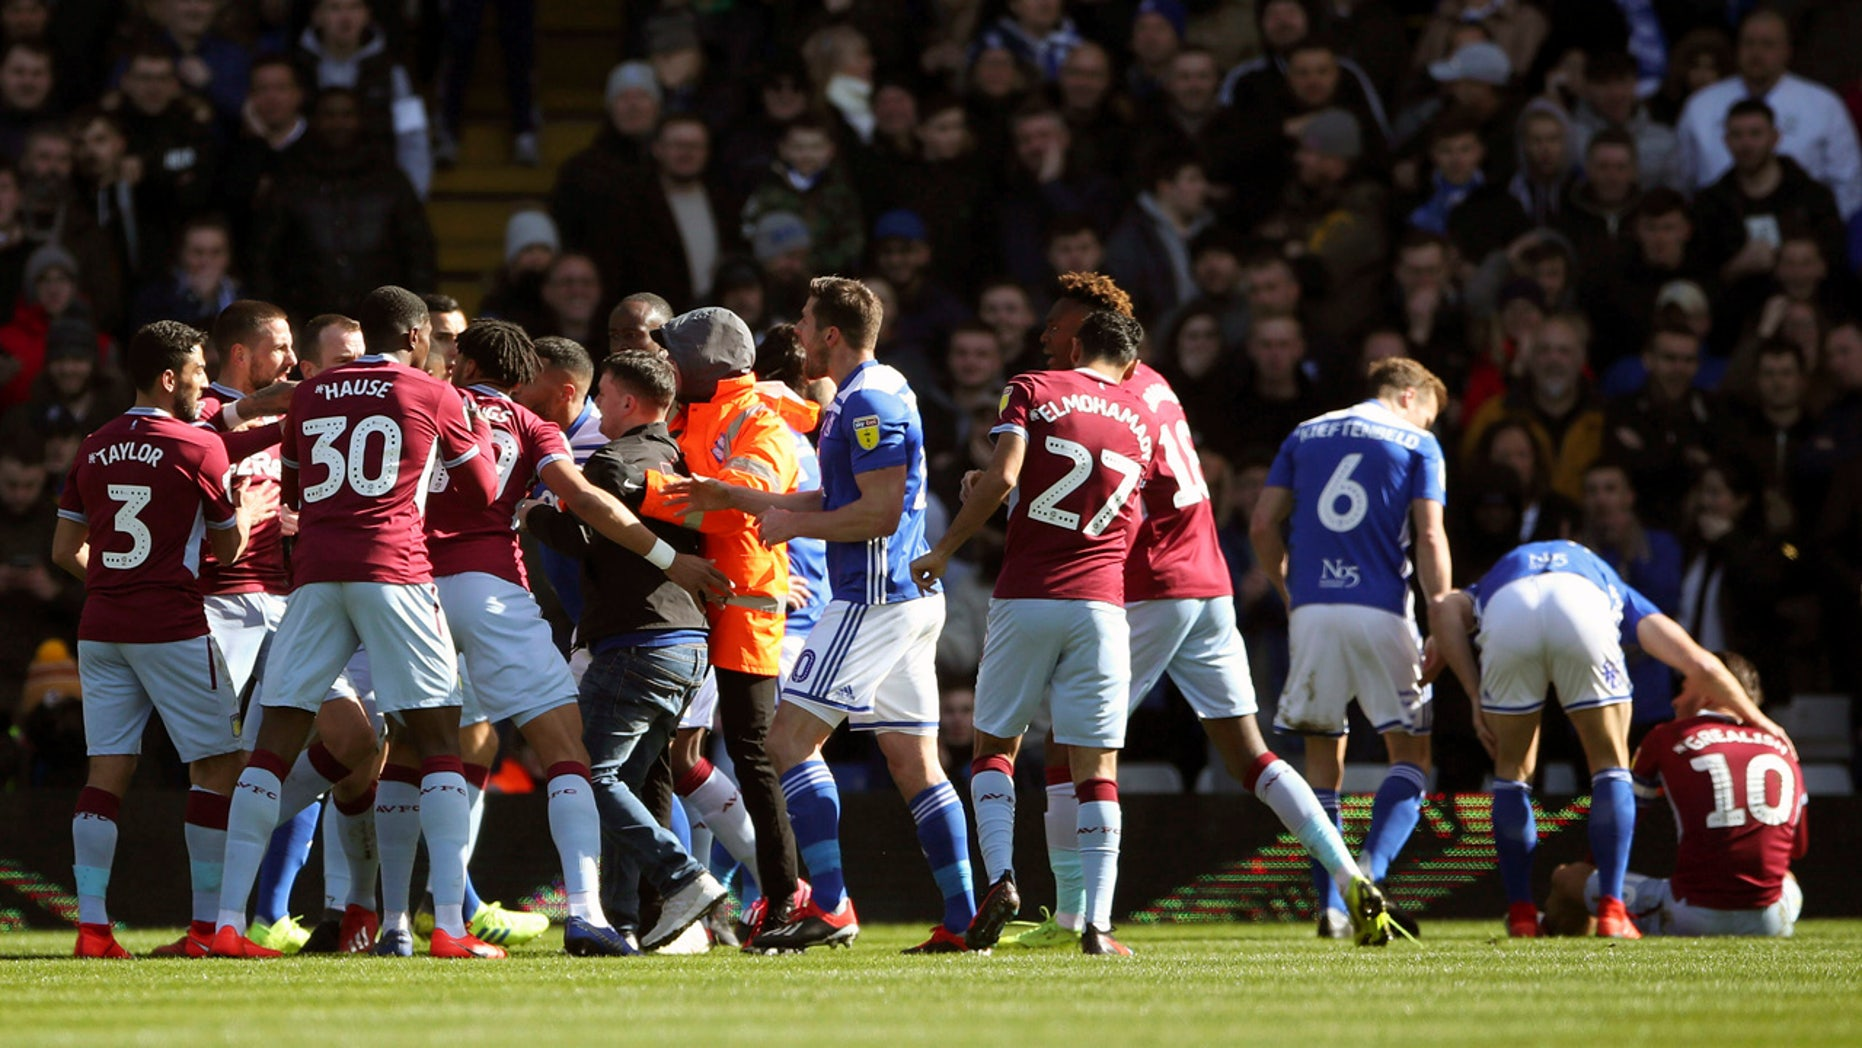 Man charged over Grealish assault